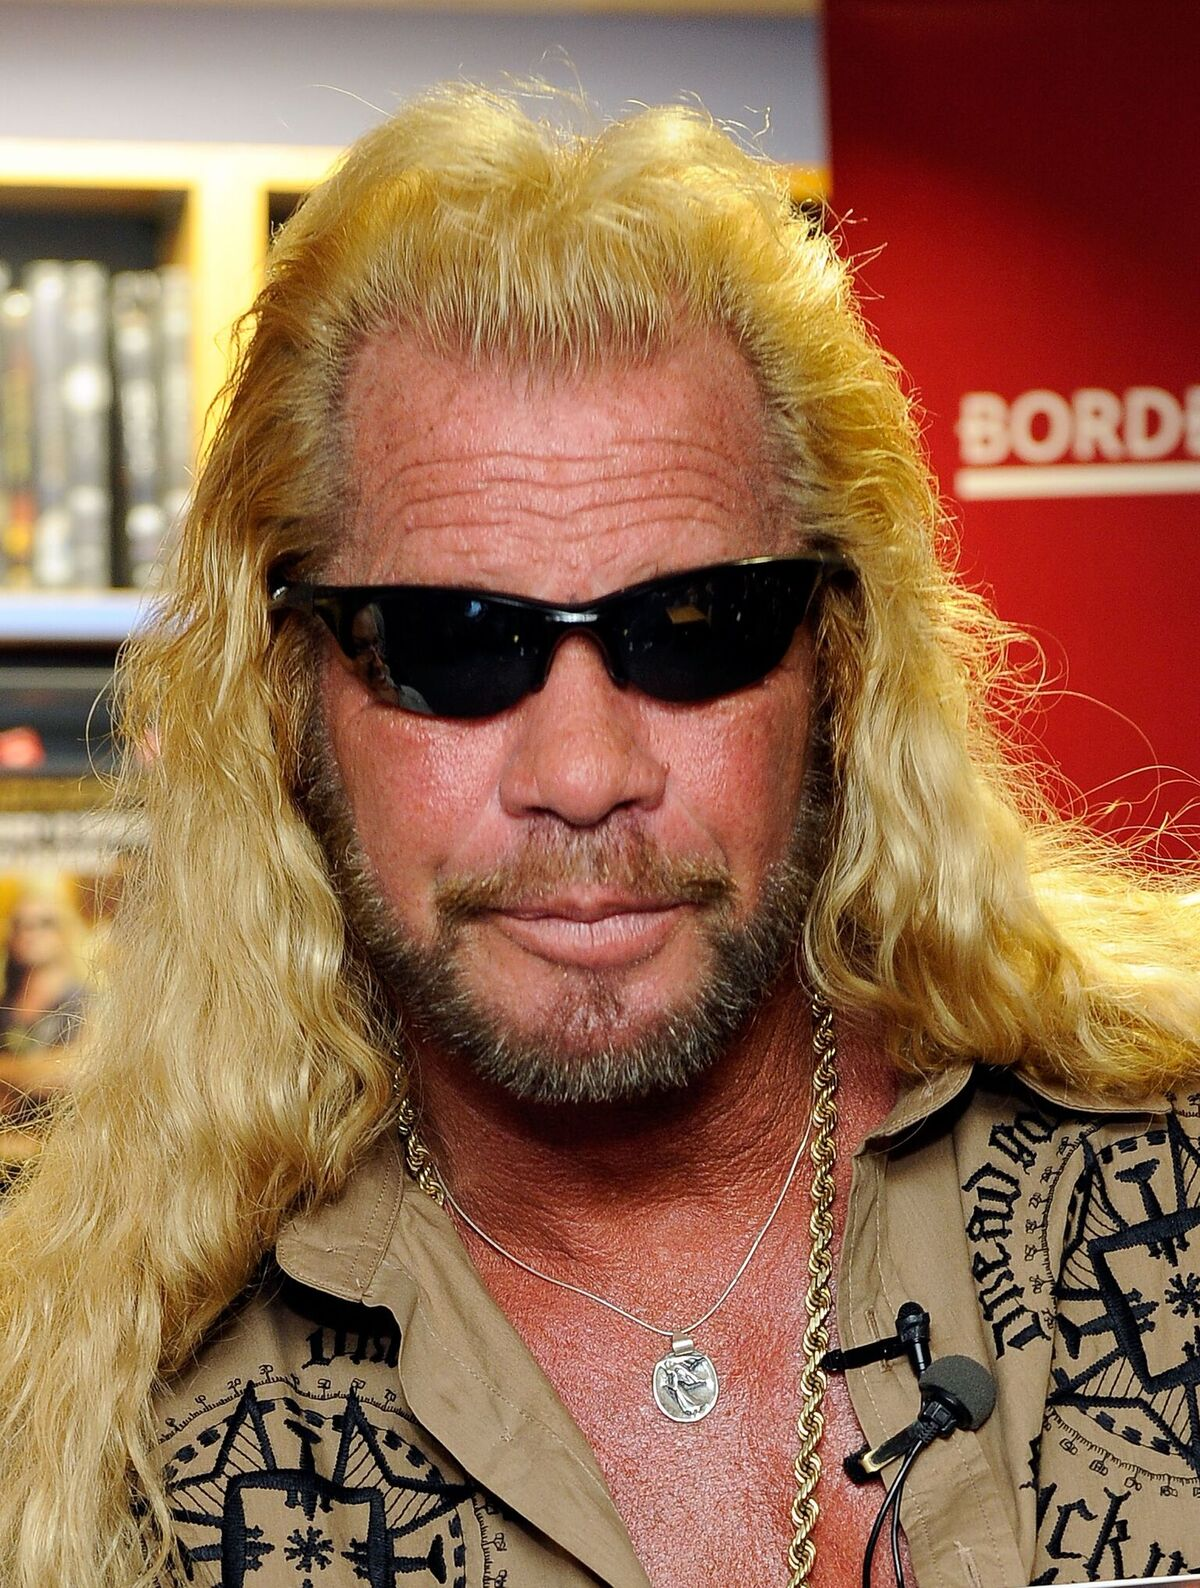 """Duane Chapman promotes his book """"When Mercy Is Shown, Mercy Is Given"""" at Borders Wall Street on March 19, 2010 in New York City   Photo: Getty Images"""